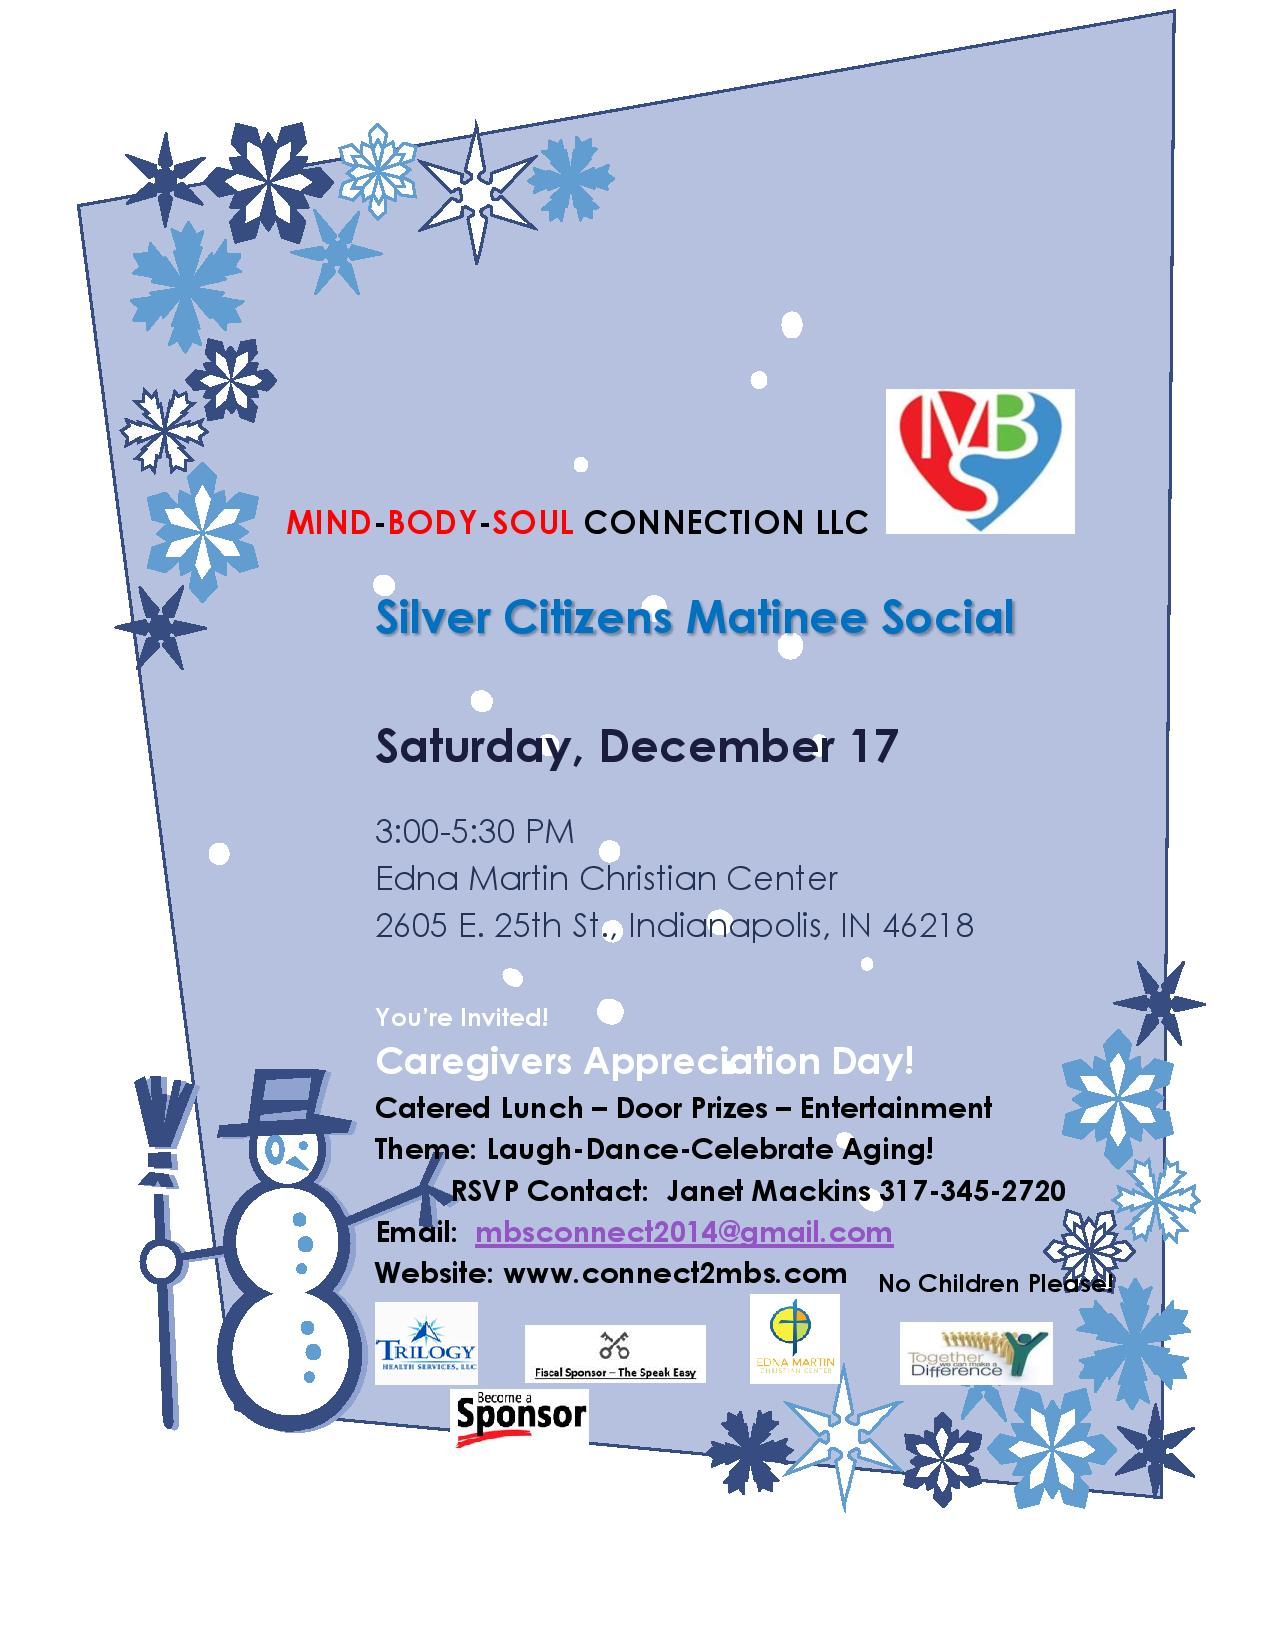 Silver Citizens Matinee Social Event